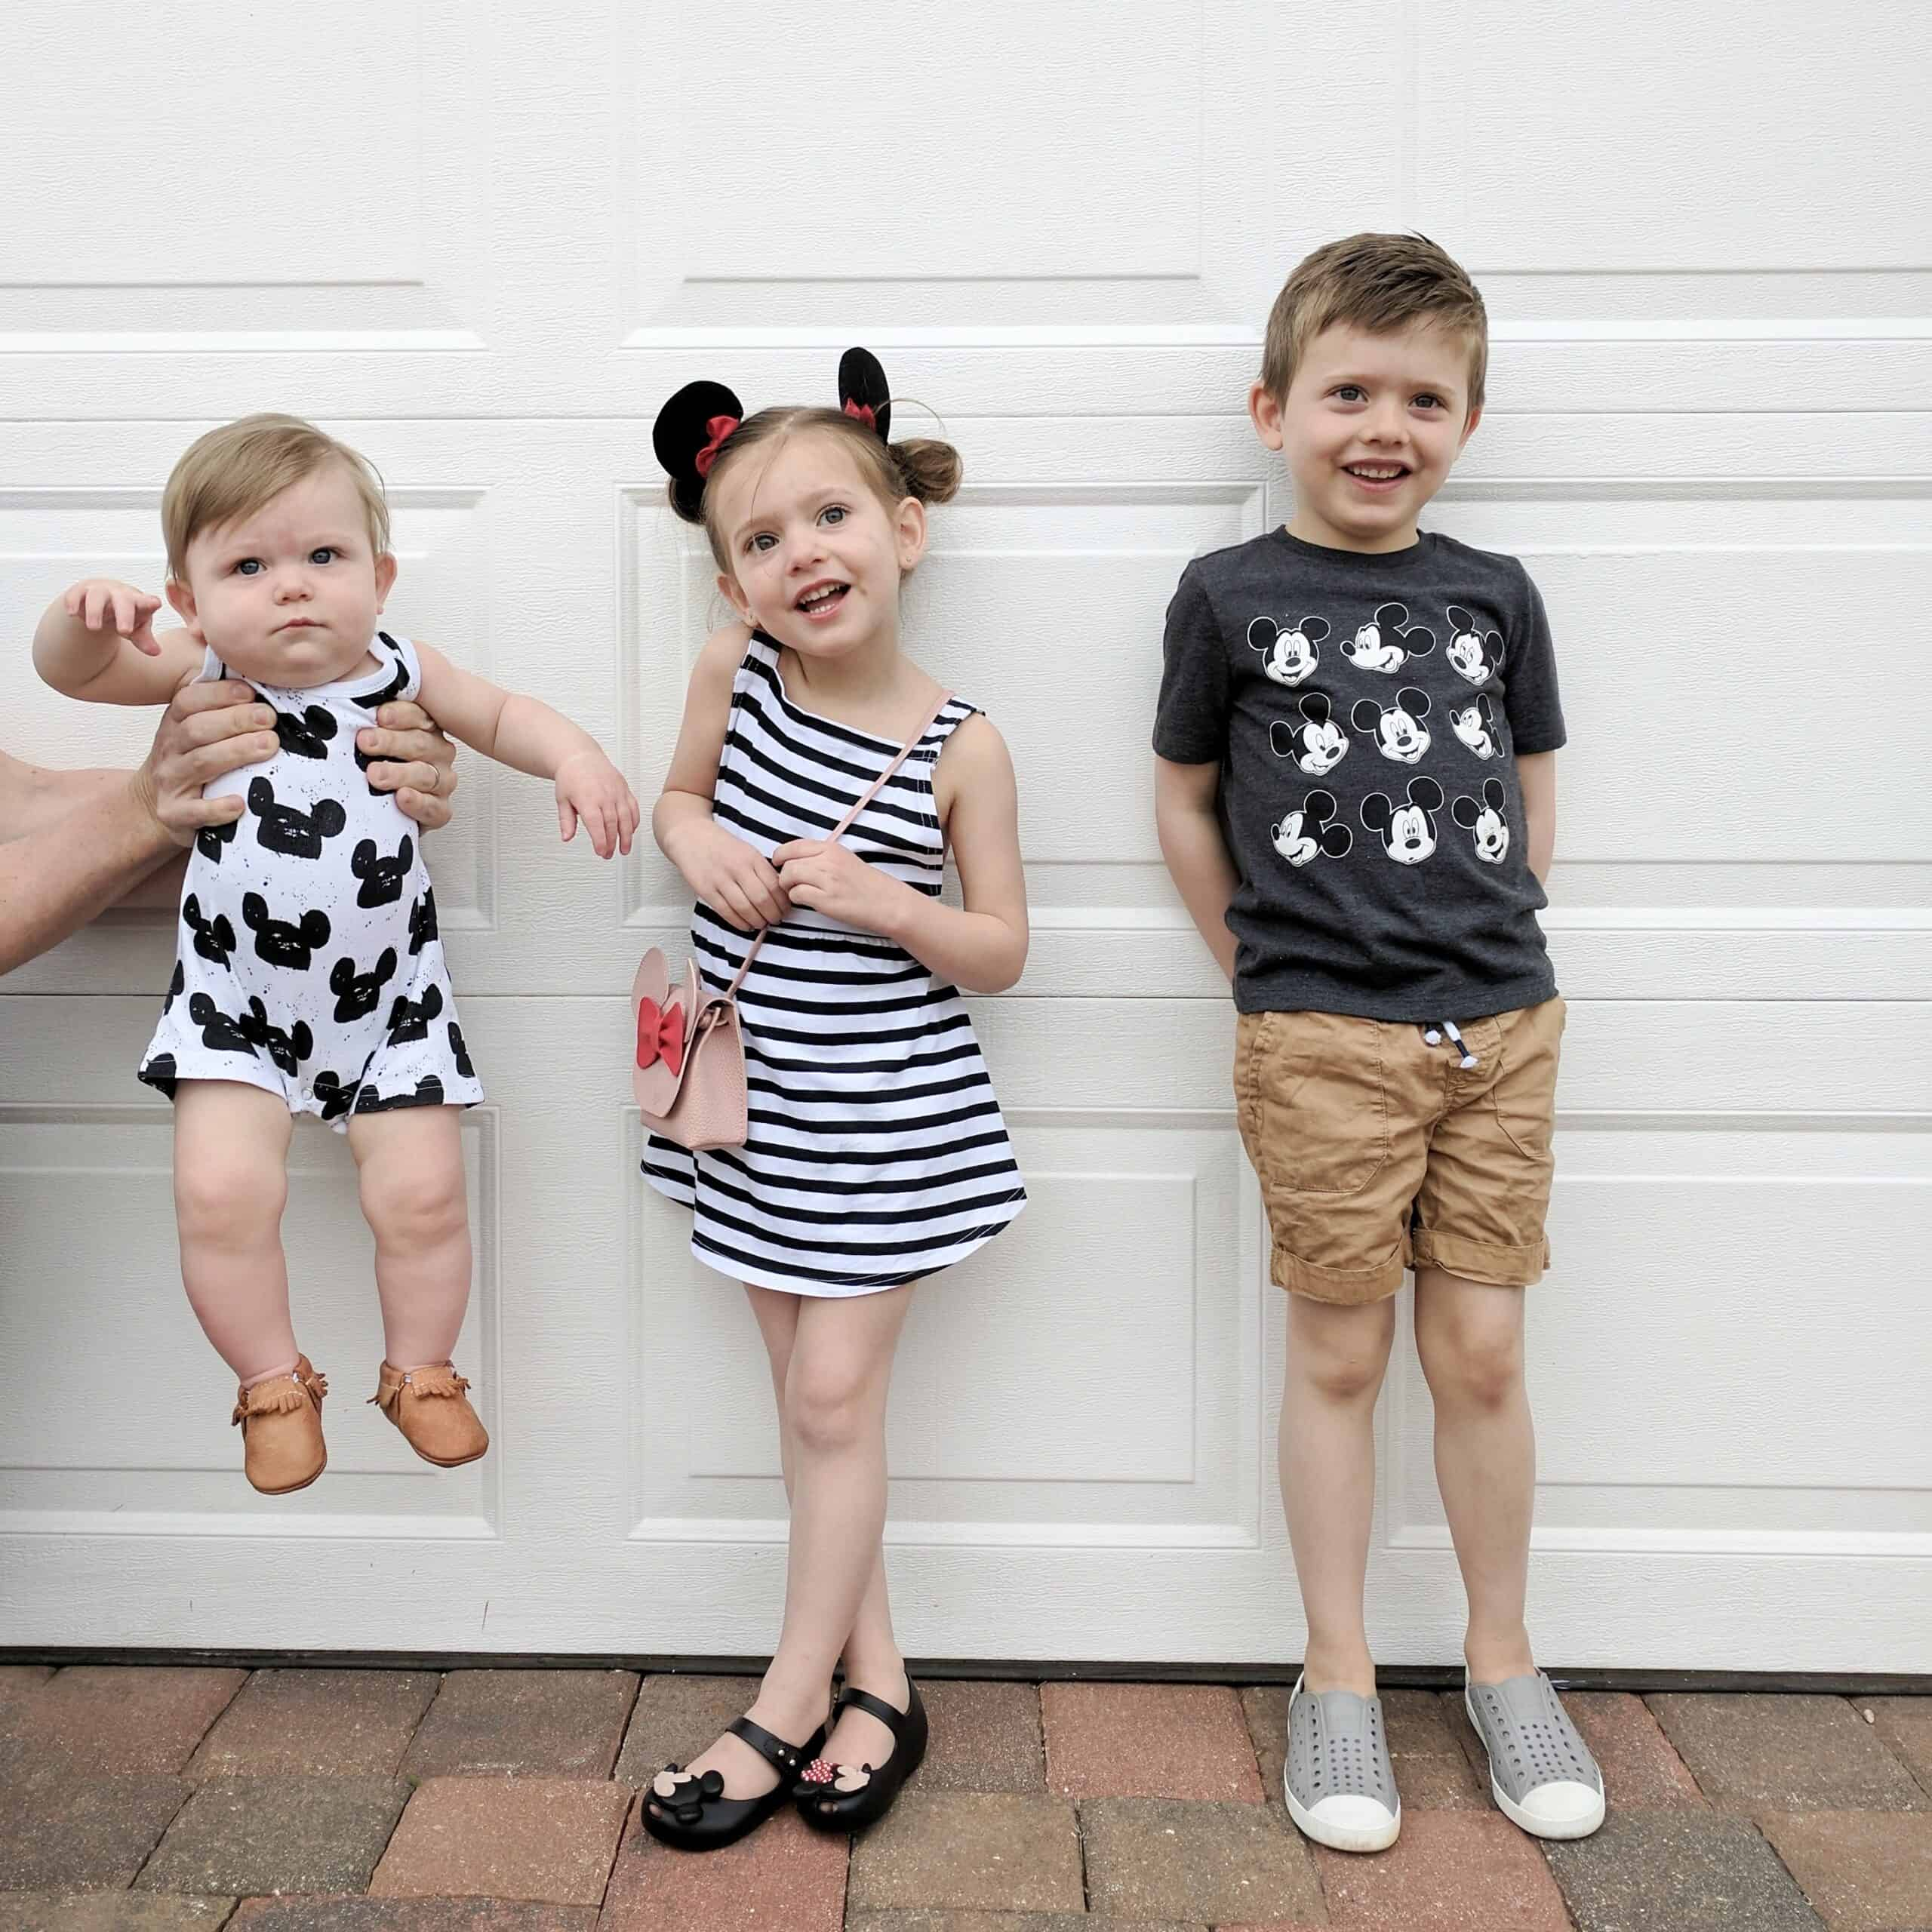 Kids dressed in Disney Outfit